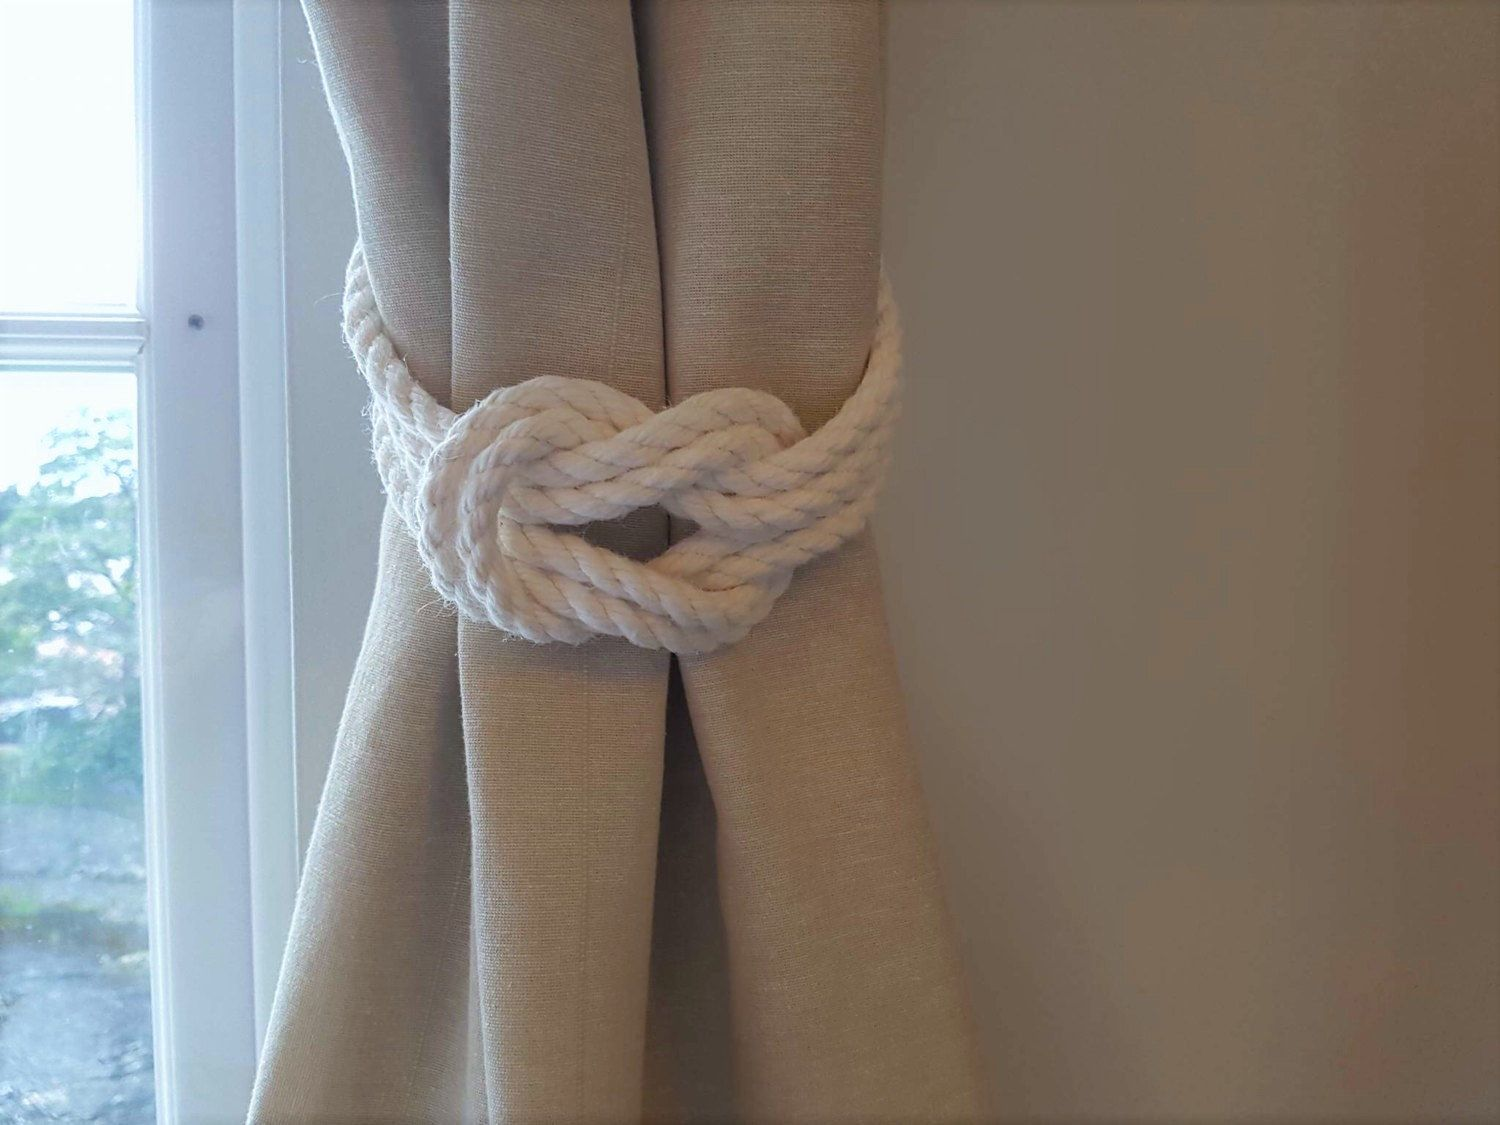 Nautical bathroom curtains - Cotton Rope Double Square Knot Nautical Curtain Tie Backs Shabby Chic Ivory White Curtain